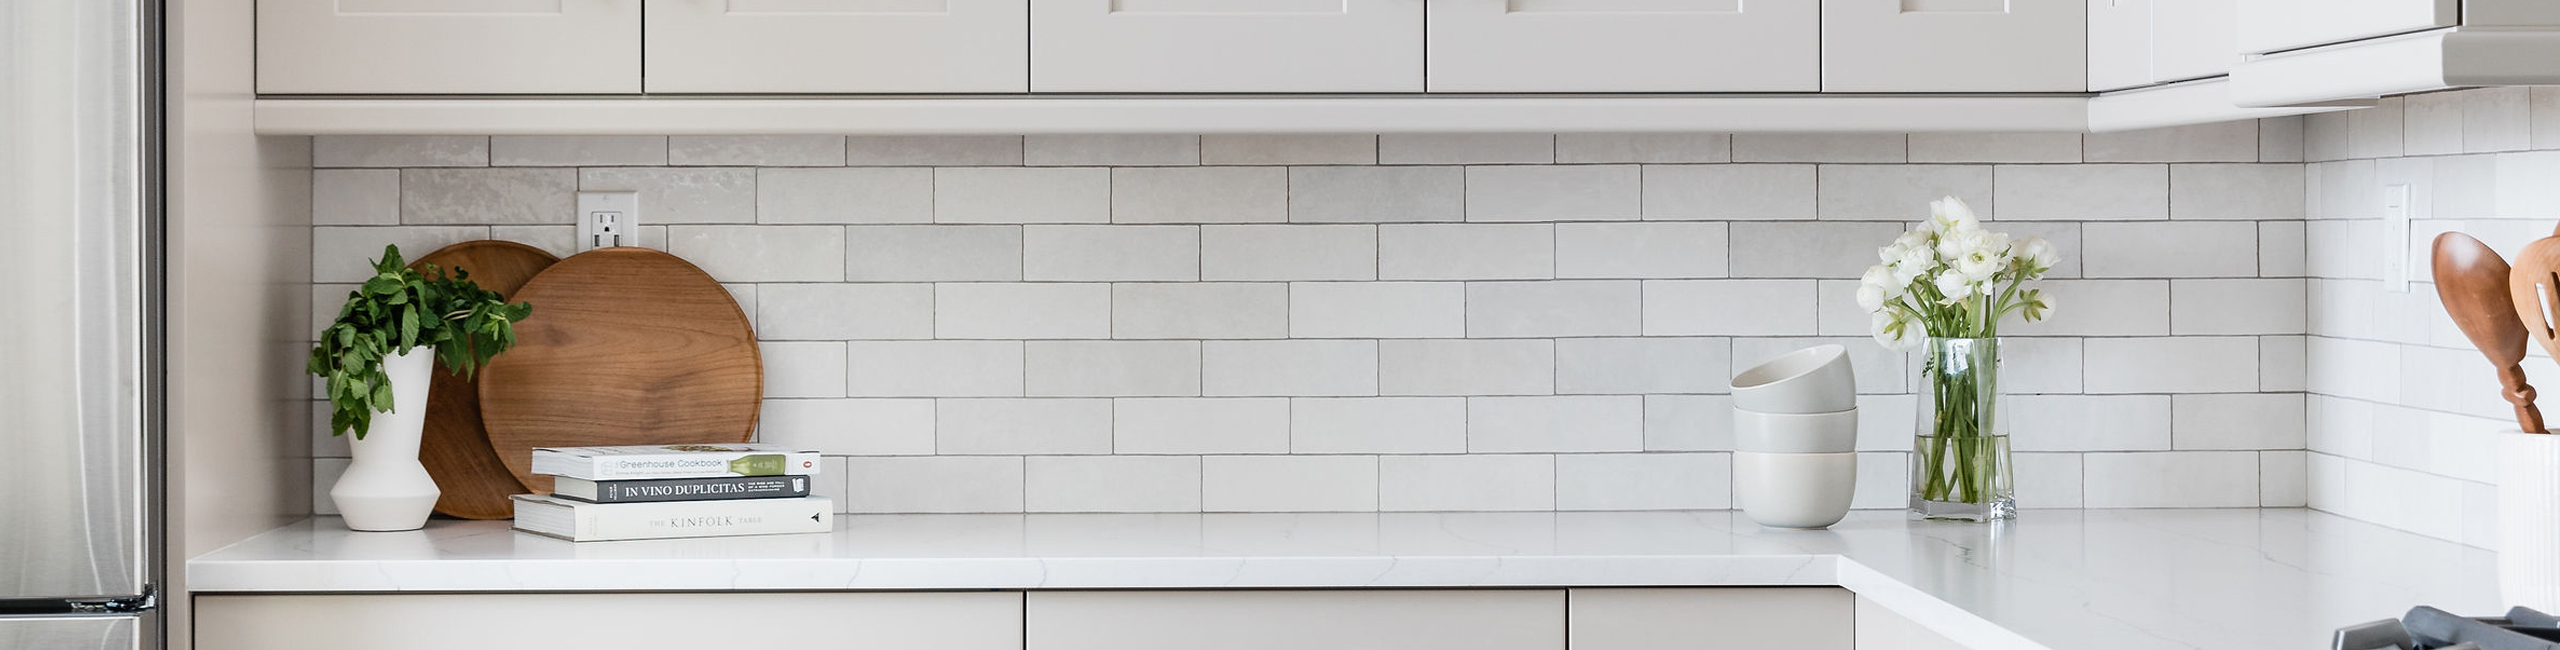 Cloé Ceramic Tile in White with dark grout - designer: Precision Cabinetry & Design, photo: Stephanie Russo